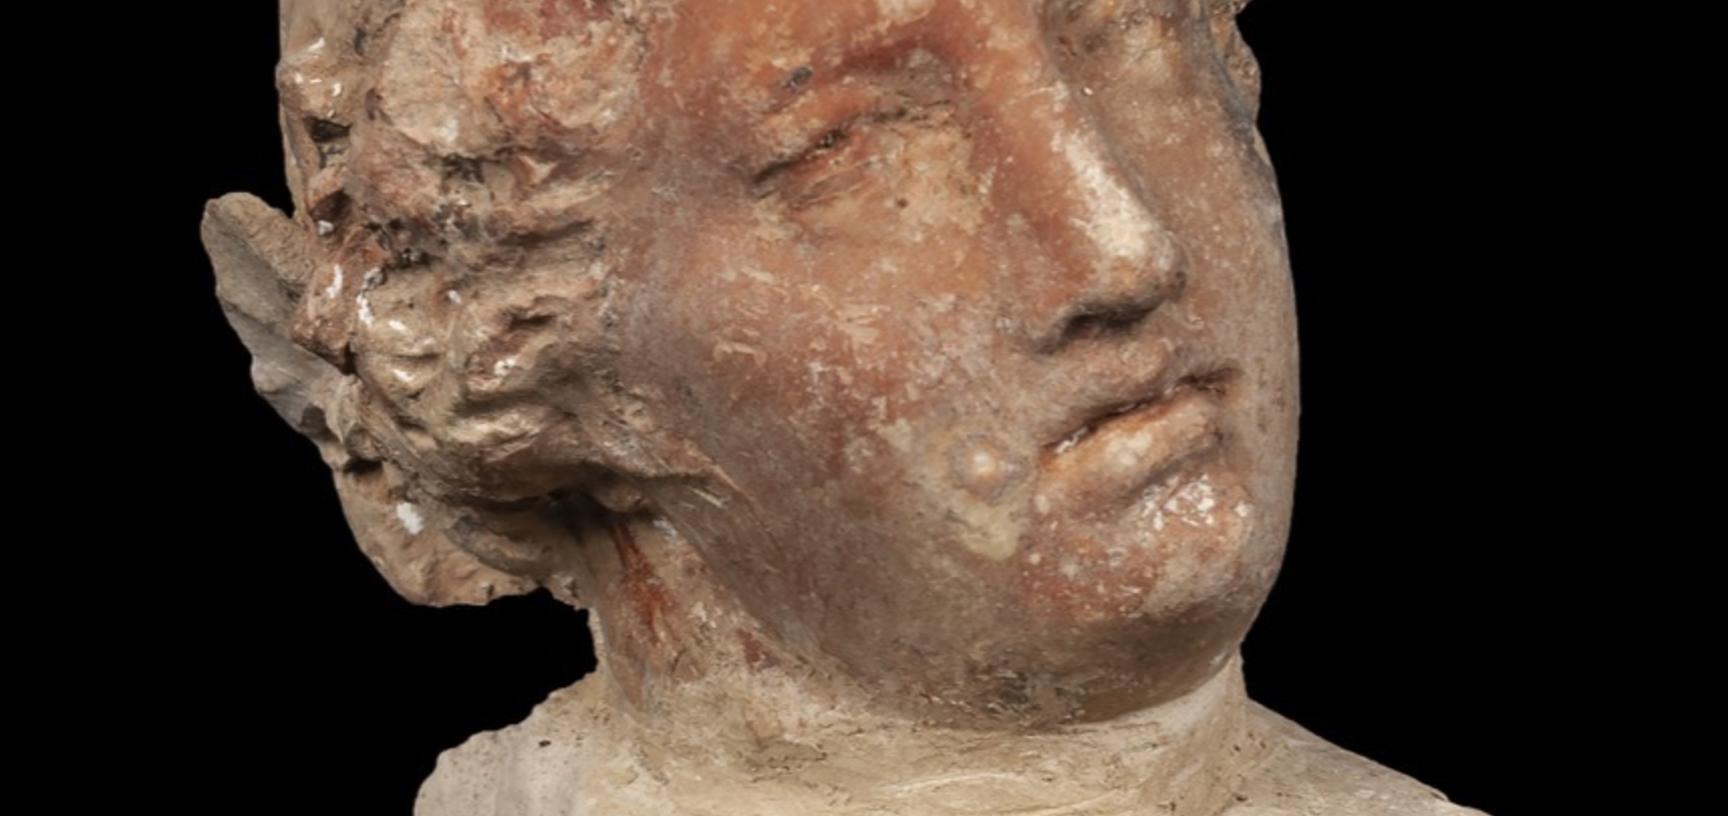 Very small statue of a head with Grecian-style hair.